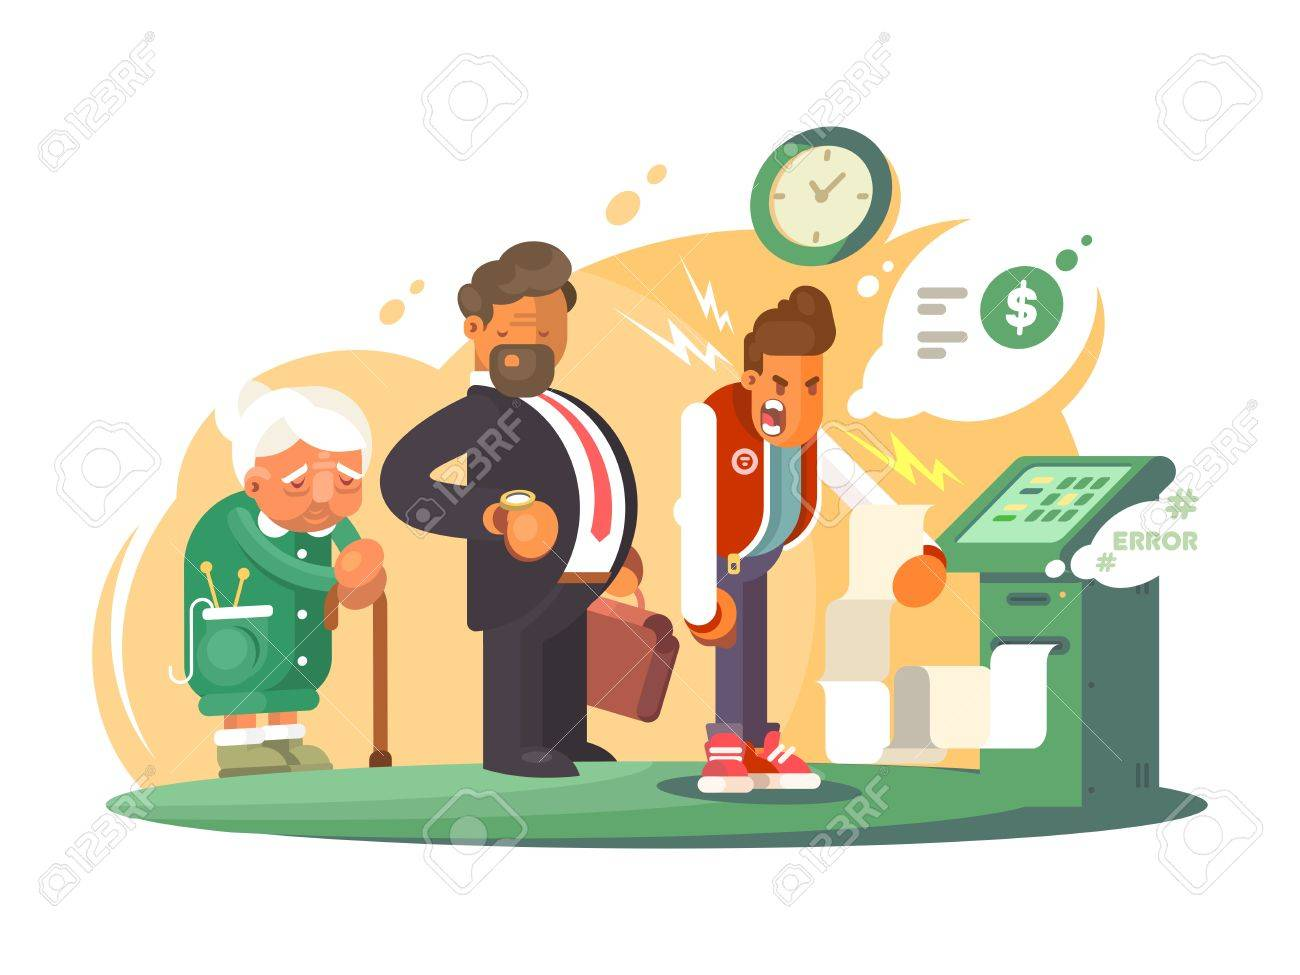 Bad service at bank. Queue of people at cash machine. Vector illustration - 68804584